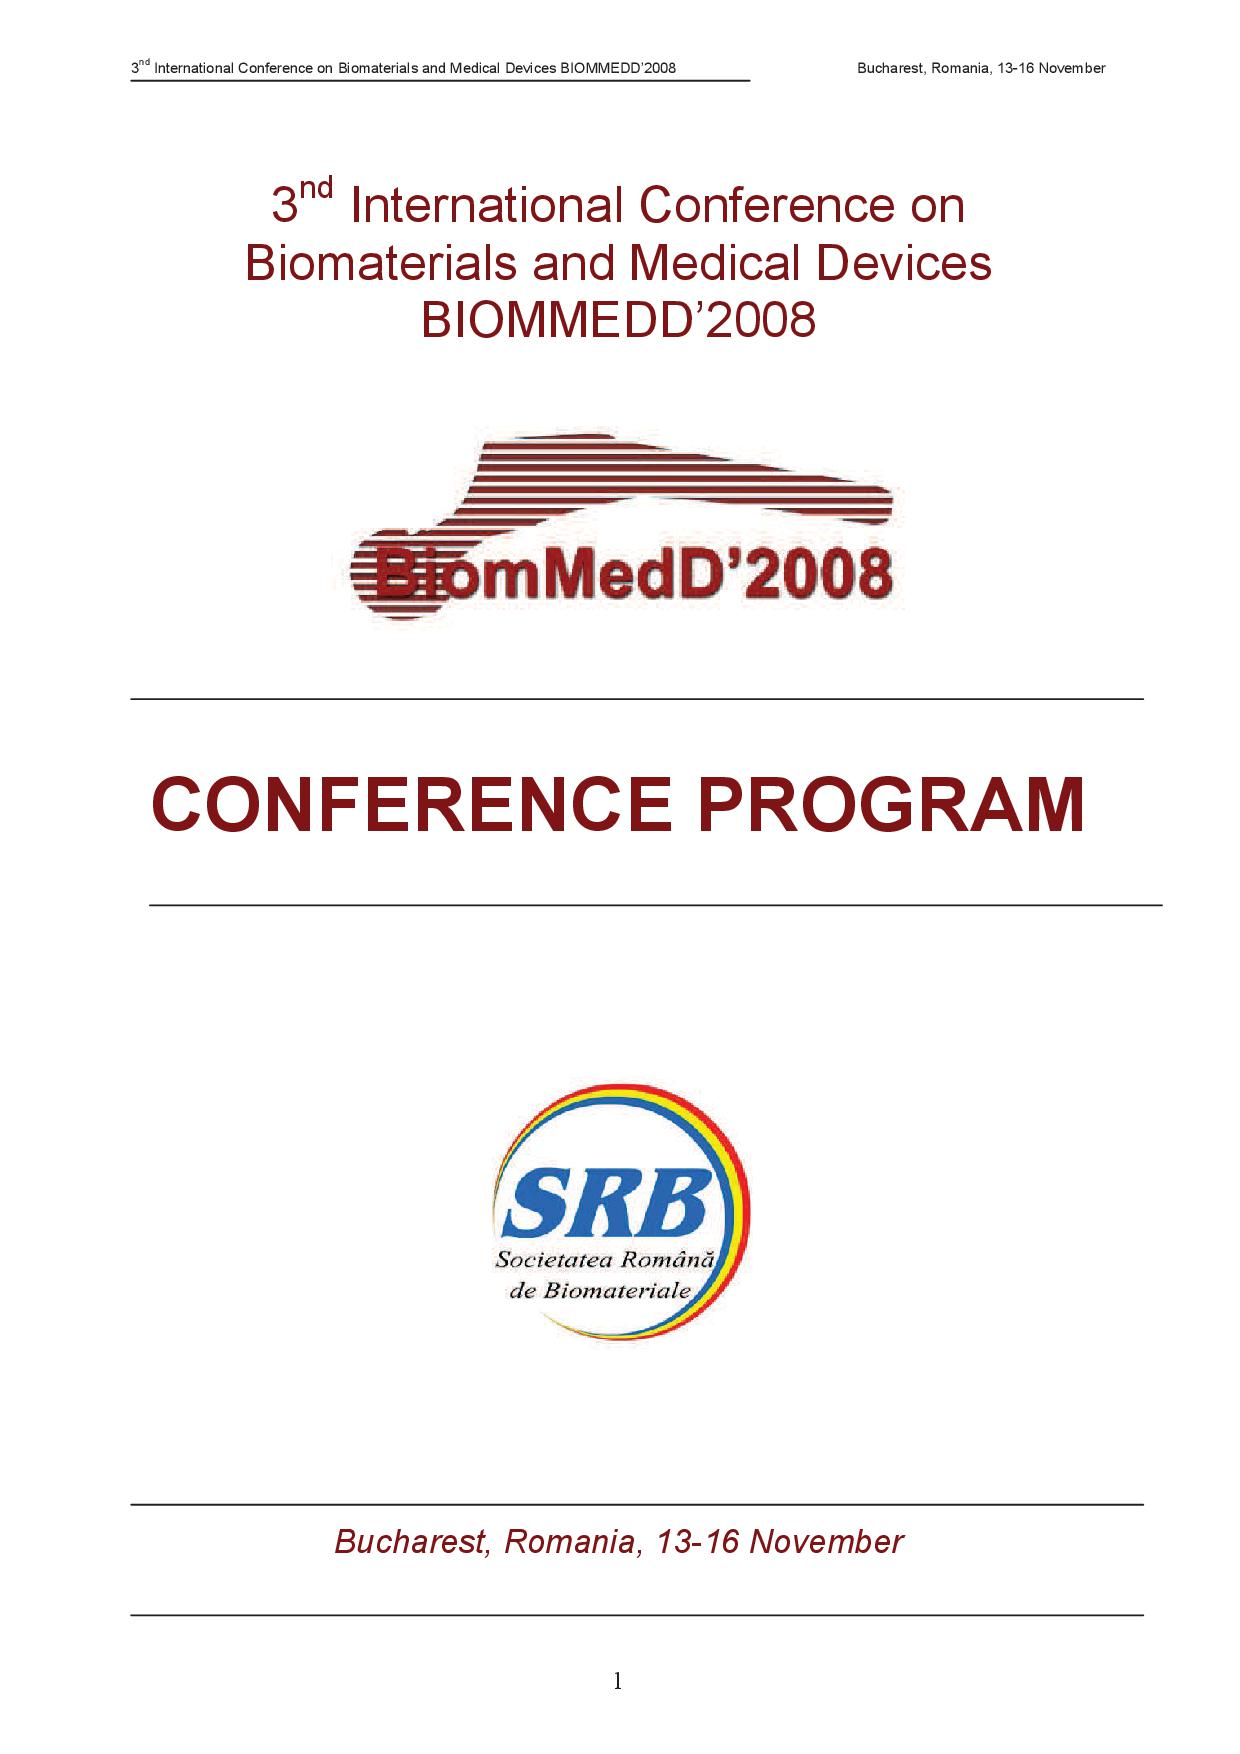 Program_BIOMMEDD2008